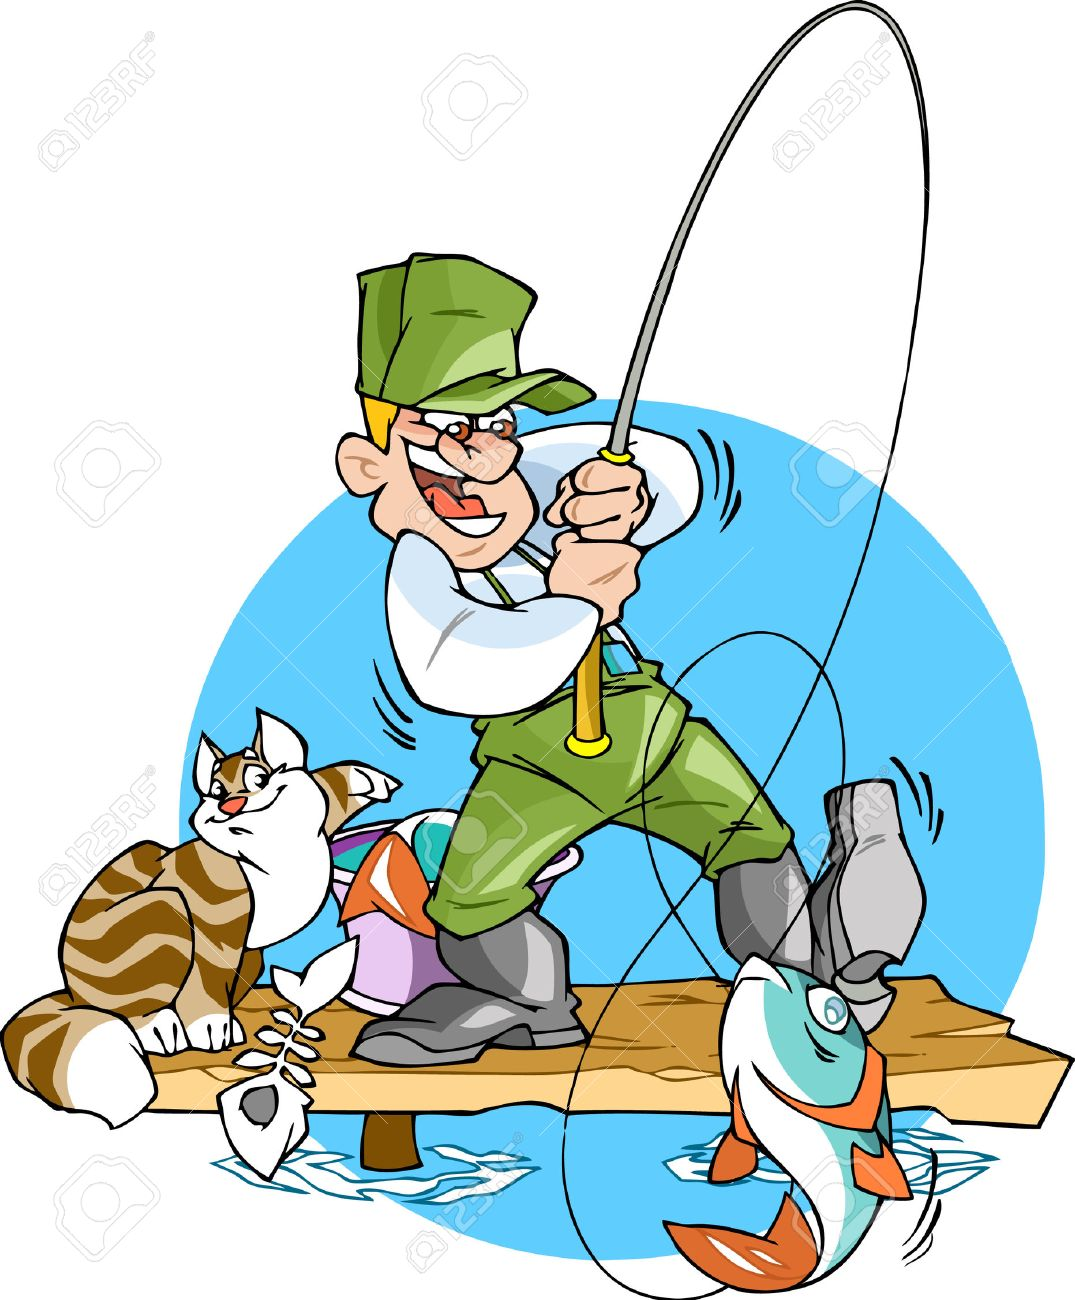 a fisherman catches a fish.he is holding a fishing rod with a, Fishing Rod